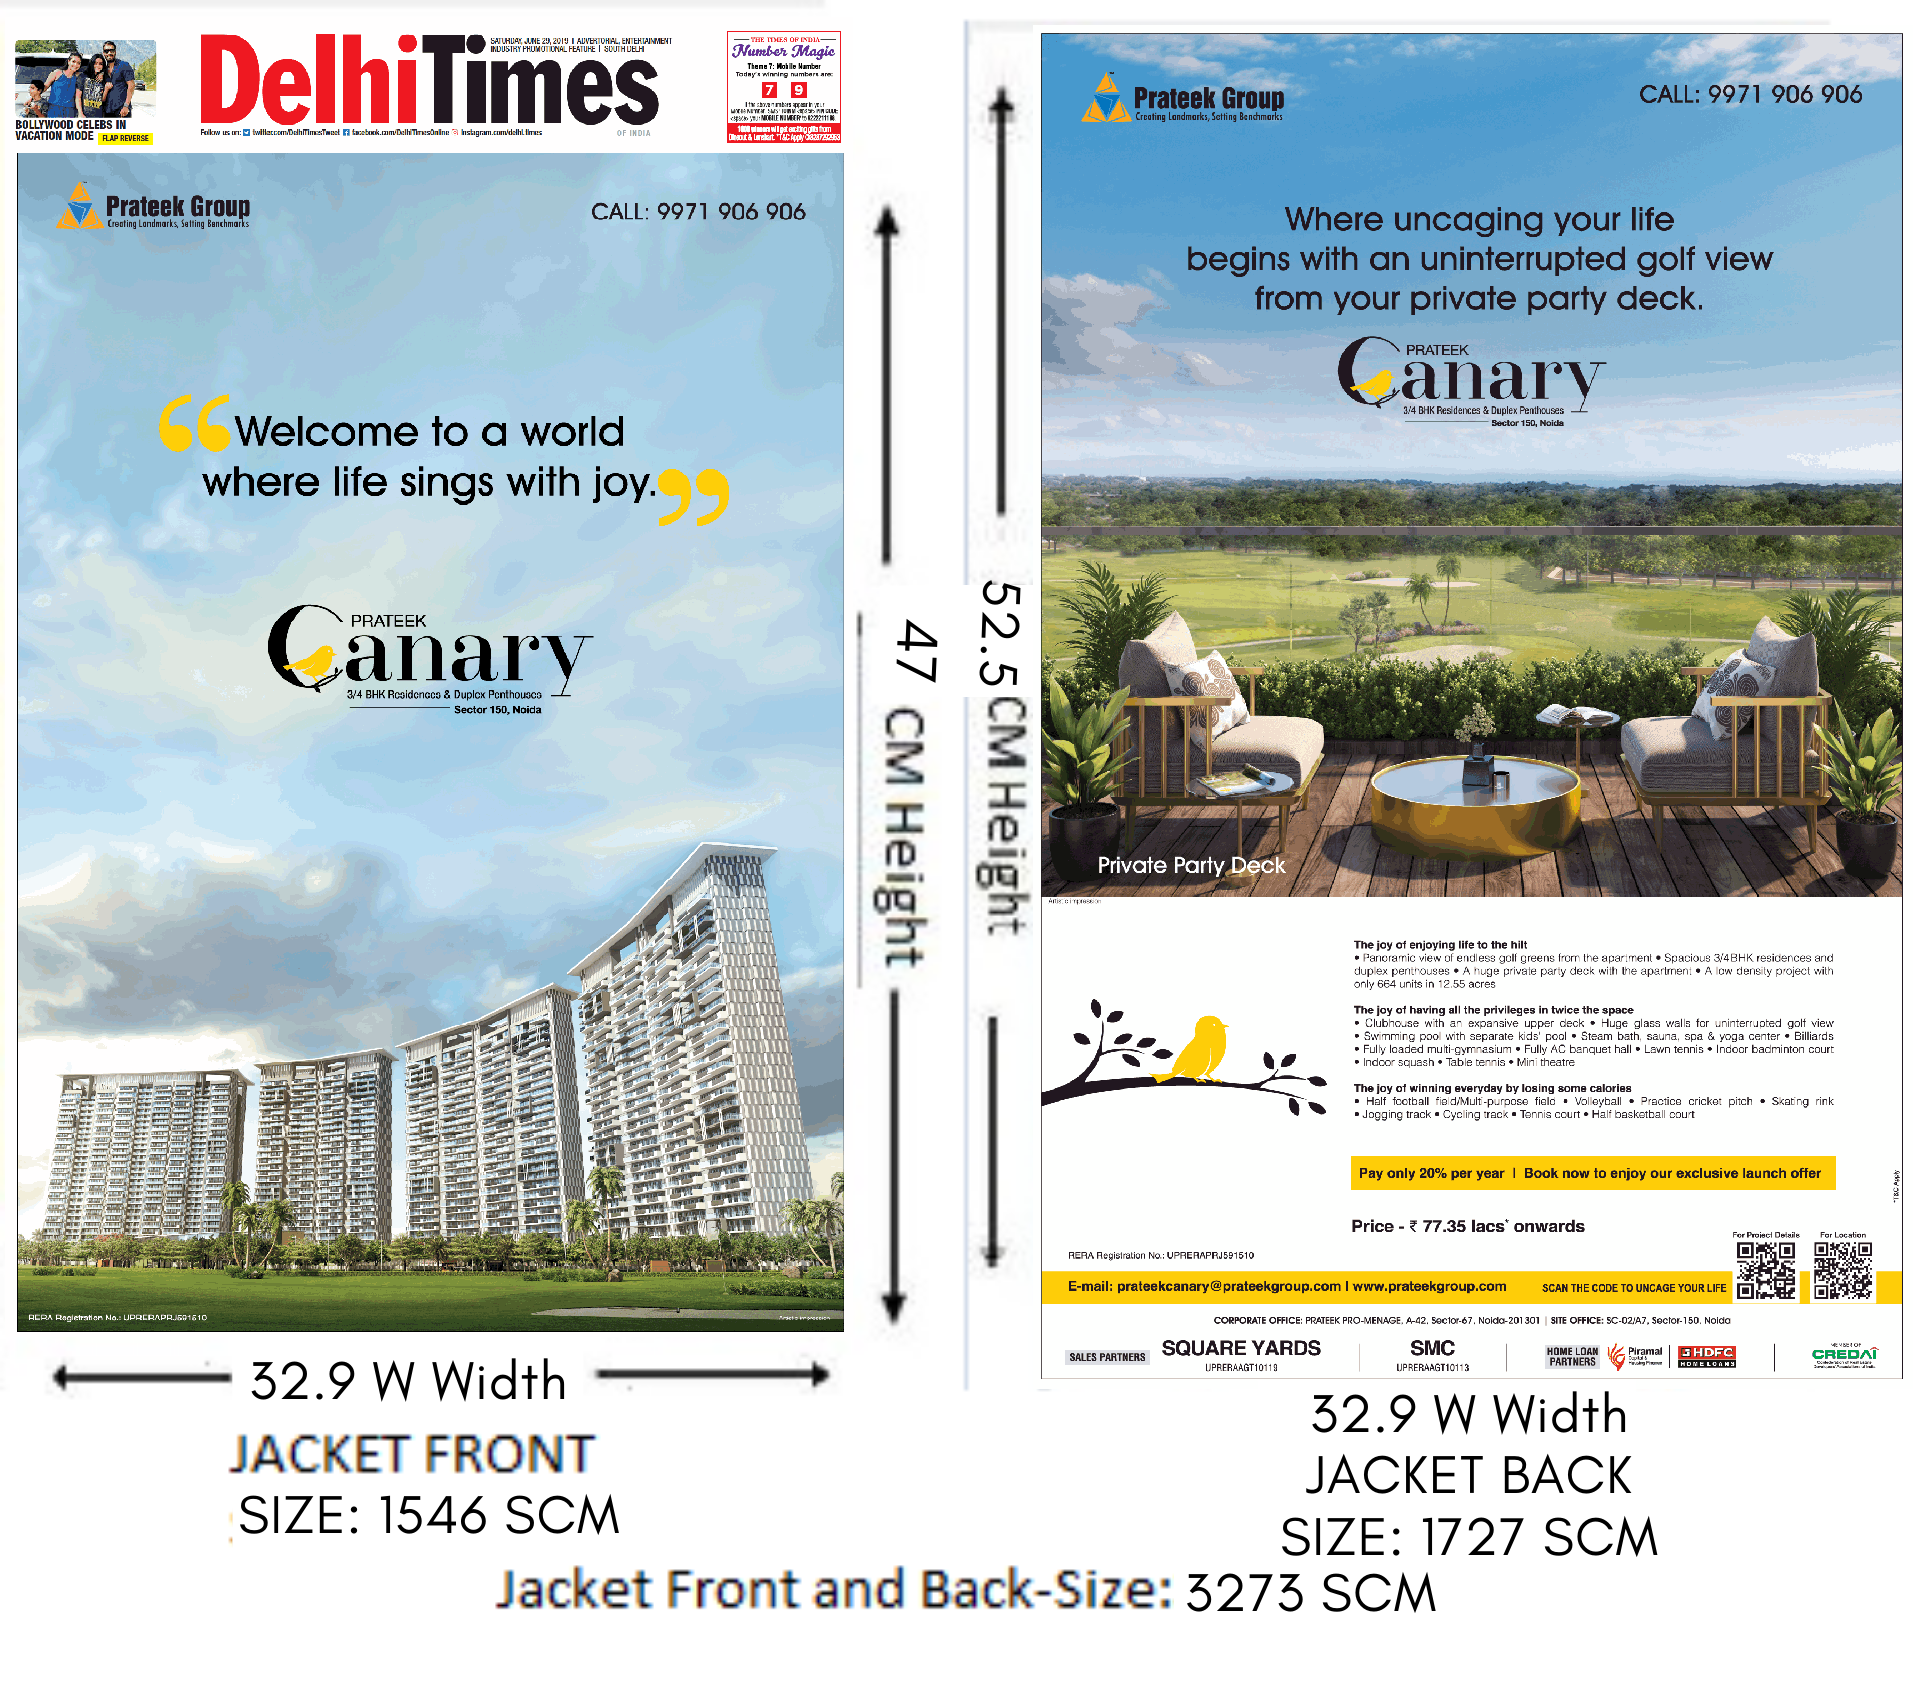 Times Of India, Delhi Times, English Newspaper - Jacket Advertising